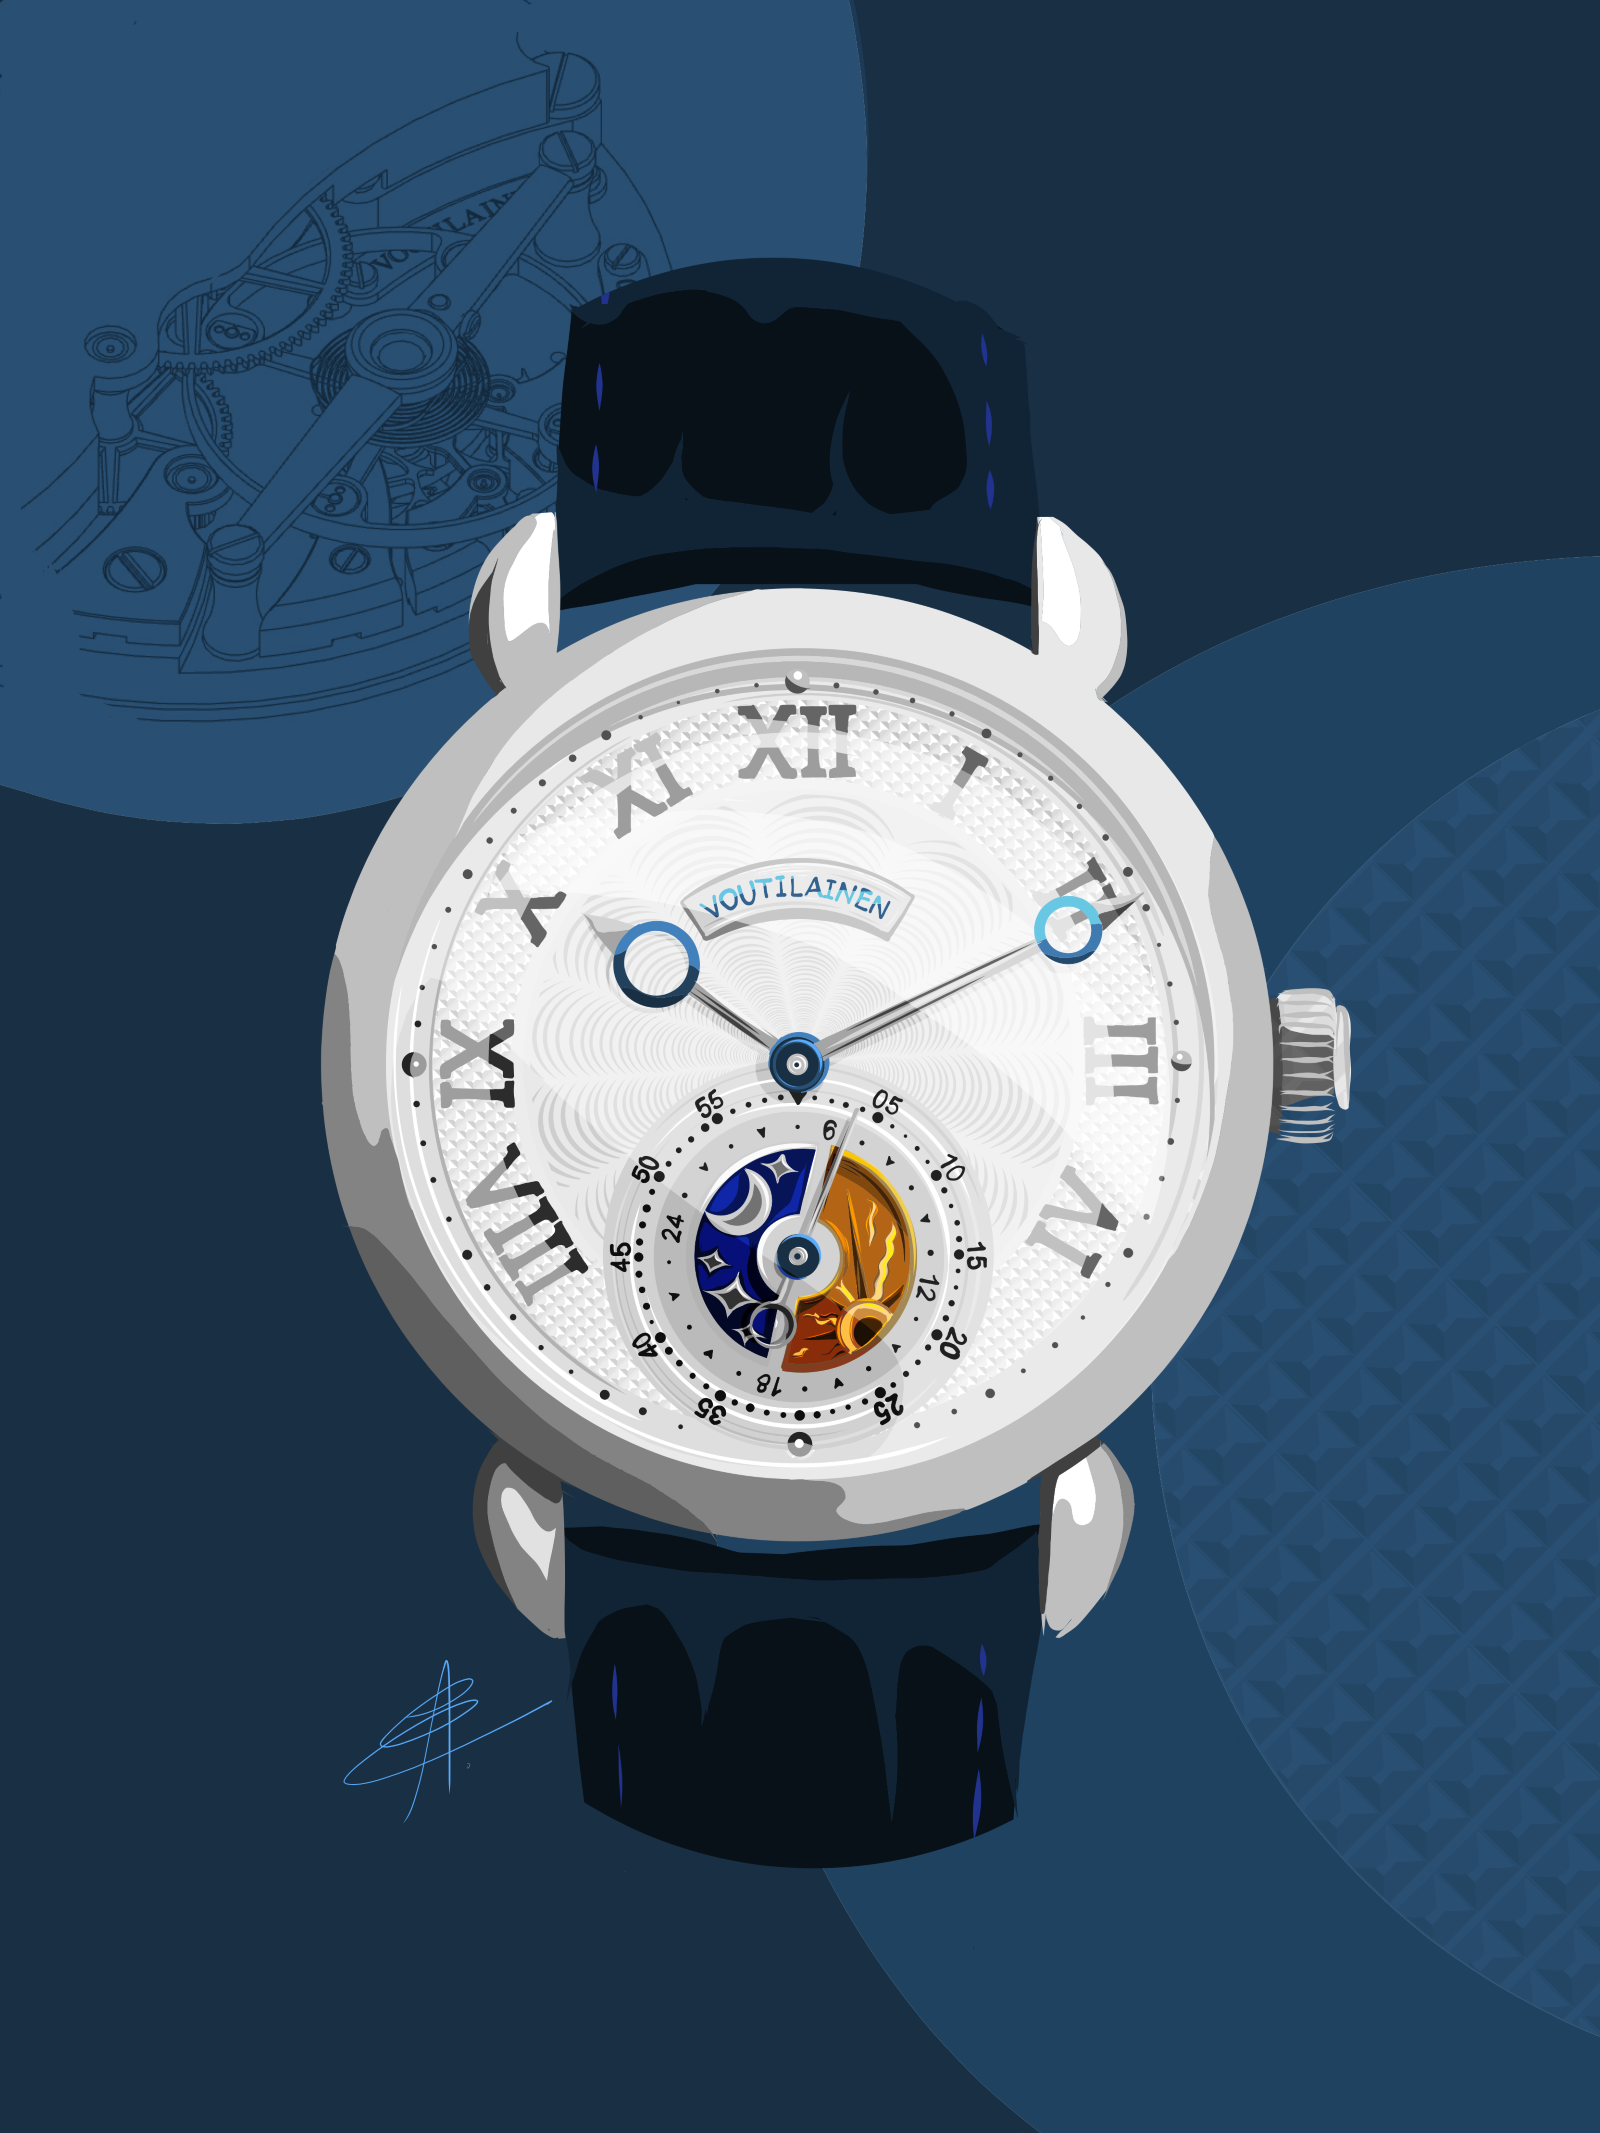 Watch art featuring the Kari Voutilainen GMT 6 by Alex Eisenzammer/@watchoniste, commissioned by the writer